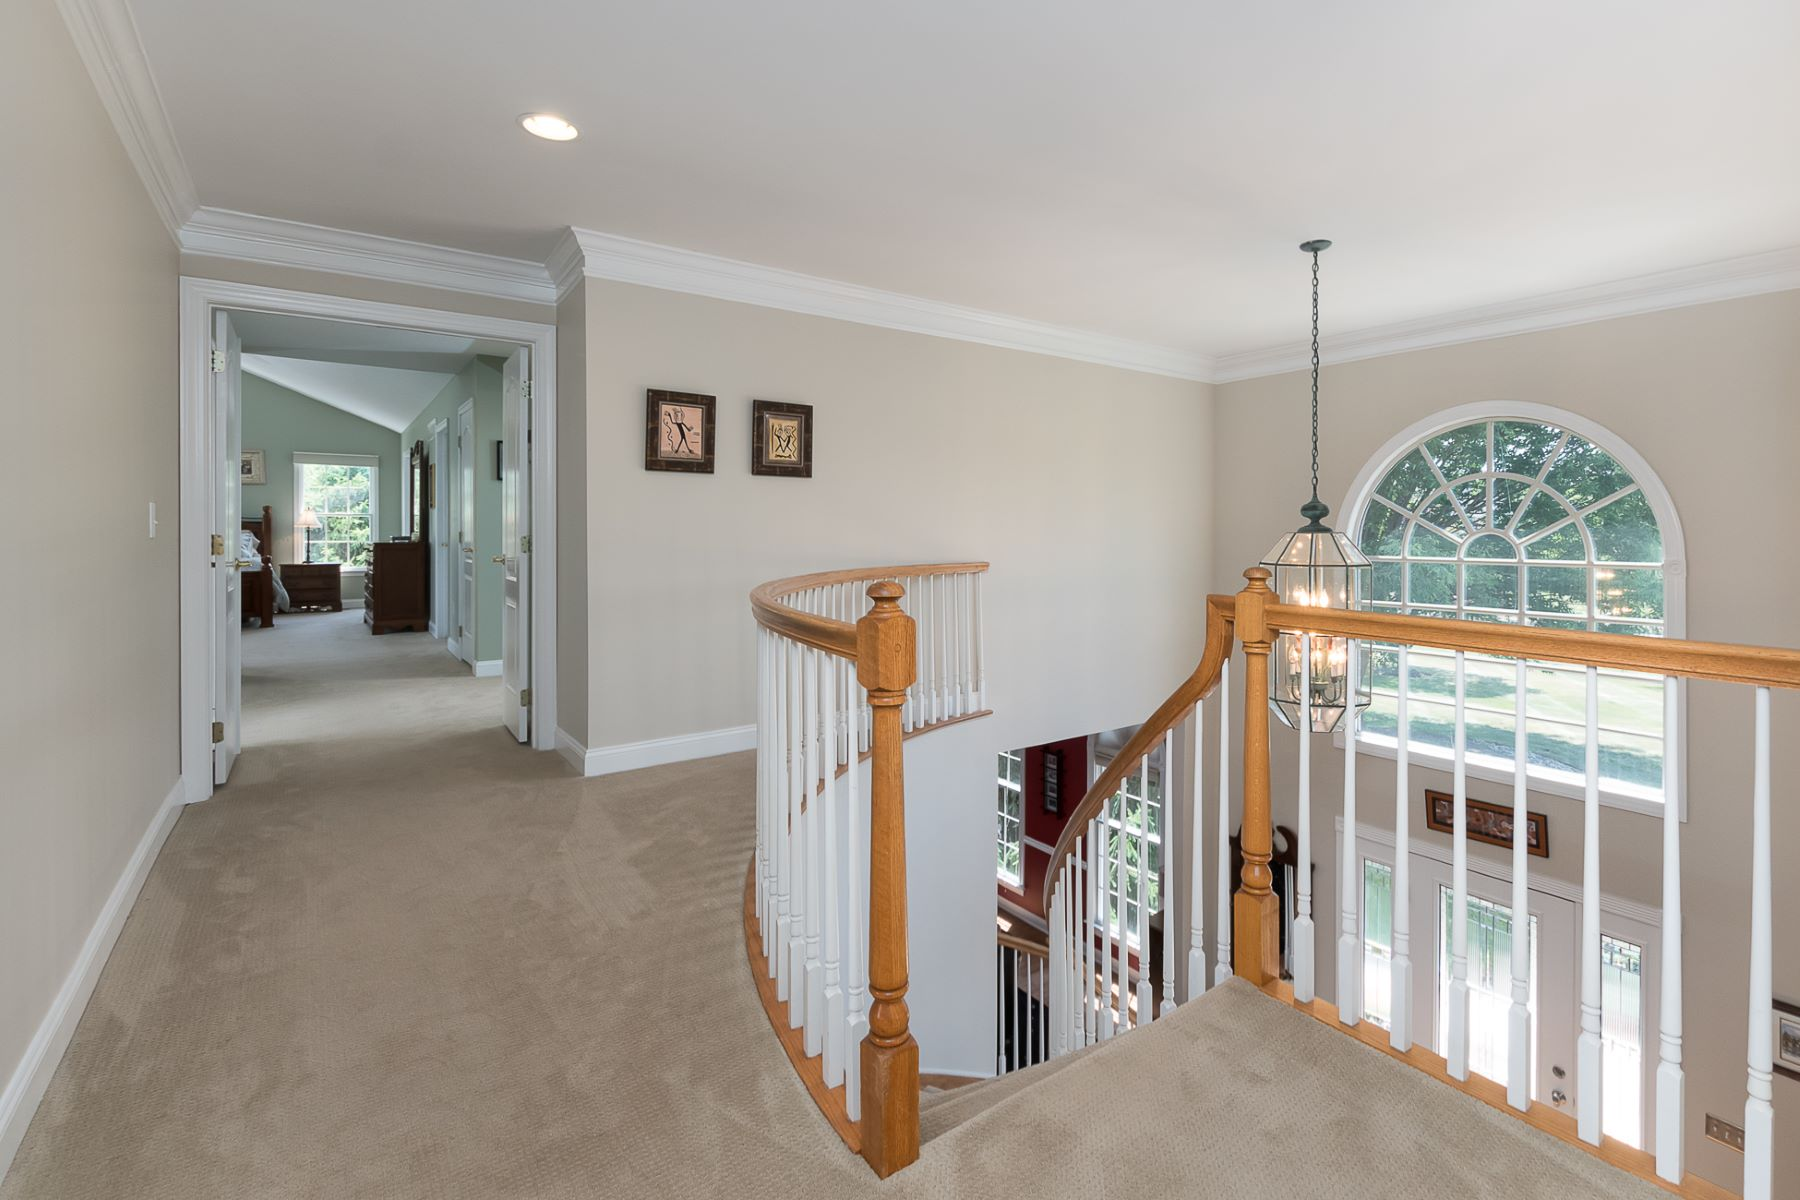 Additional photo for property listing at Beautifully Presented Home In A Commuter-Friendly Location 28 Woodland Drive, Belle Mead, New Jersey 08502 United States